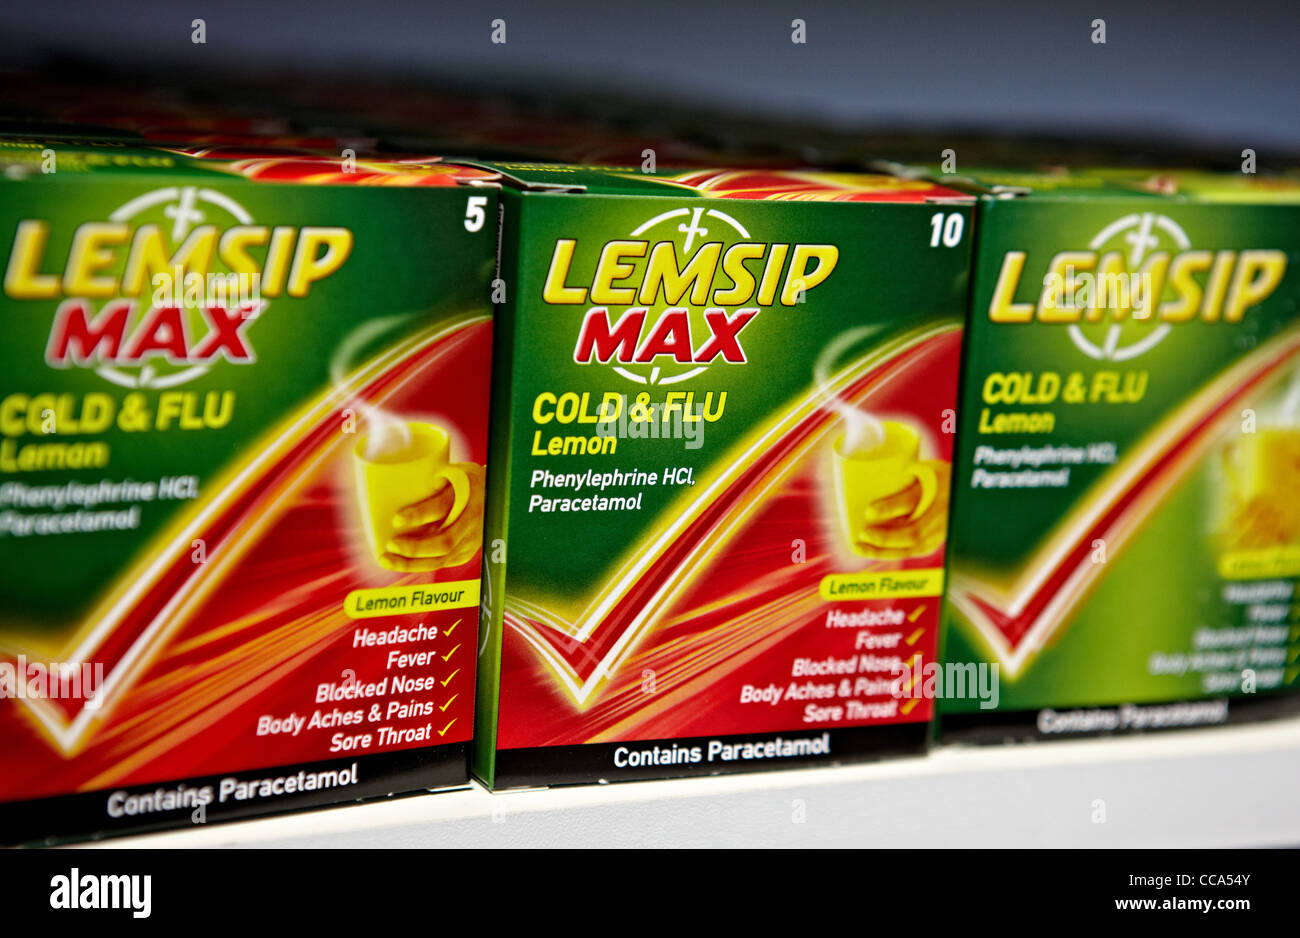 Lemsip packets on a supermarket shelf. Lemsip provides cold and flu relief. - Stock Image